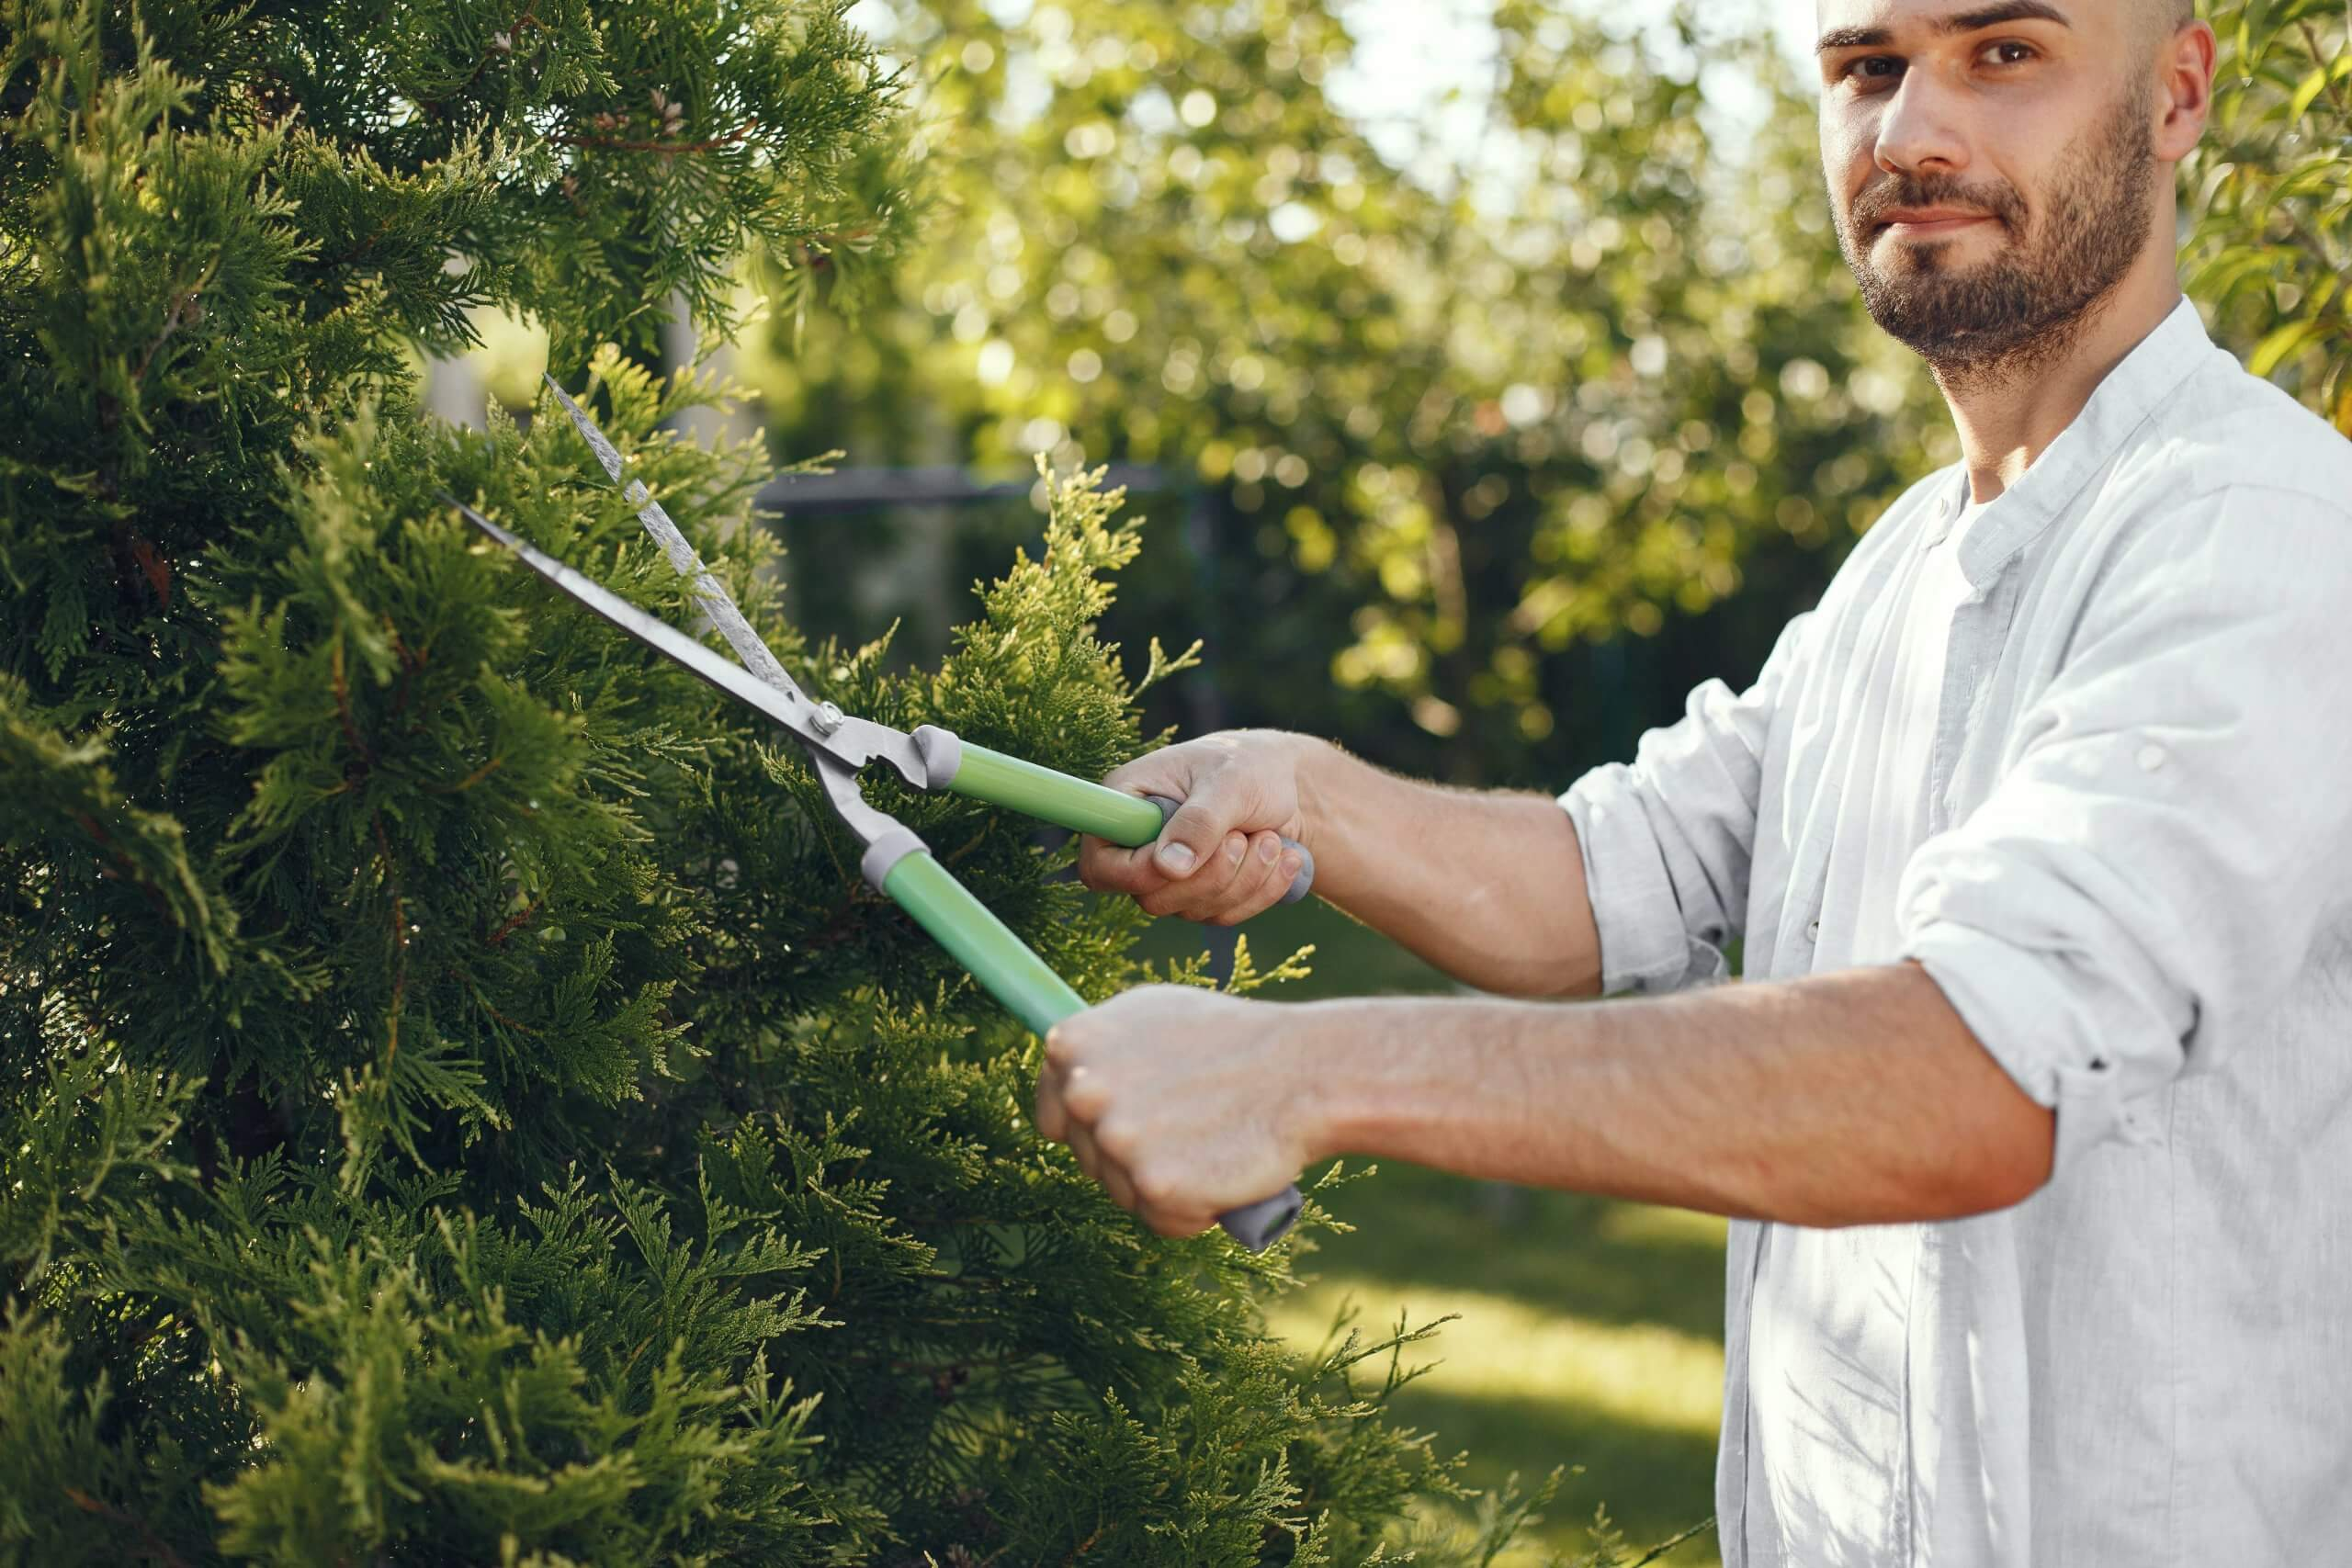 Gardening services and the NDIS